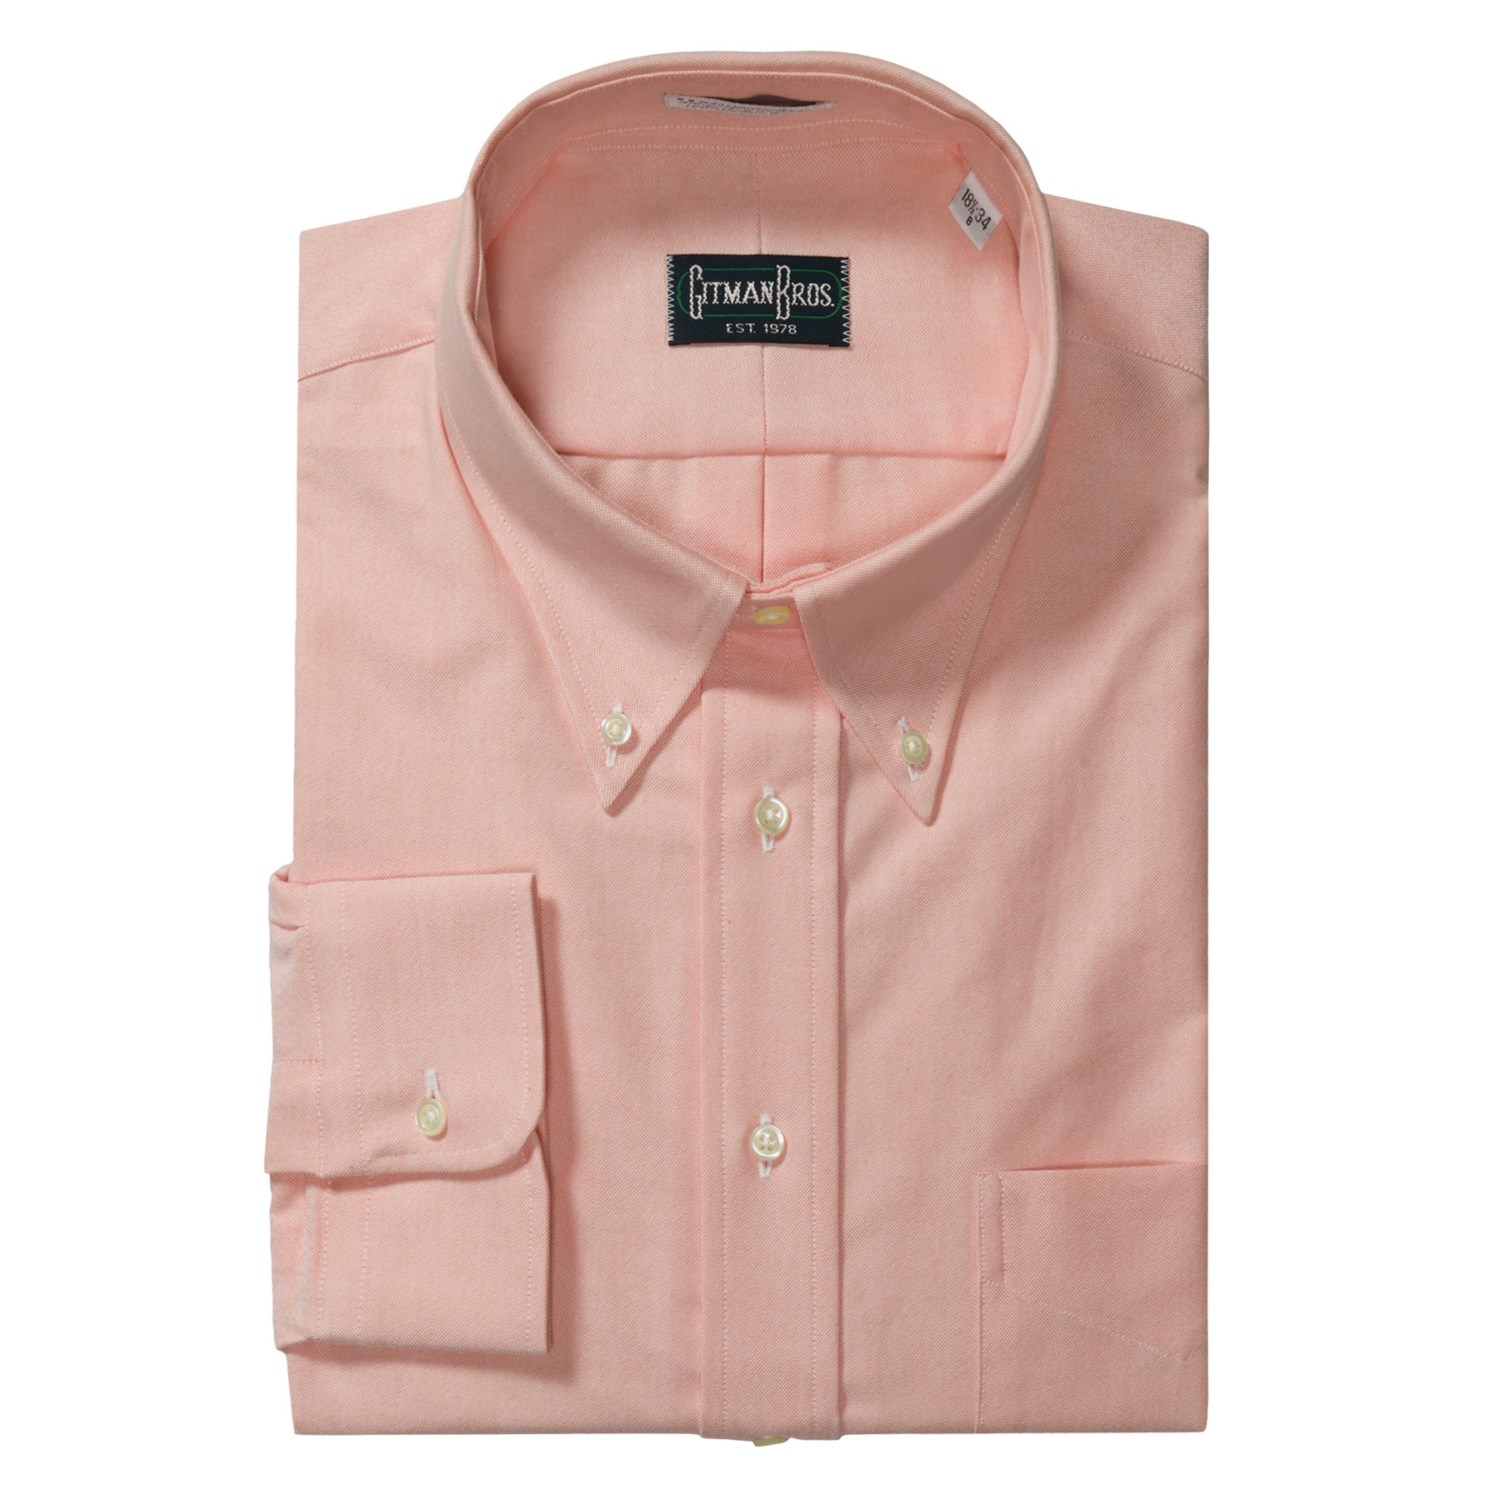 Gitman Brothers Solid Oxford Dress Shirt Long Sleeve